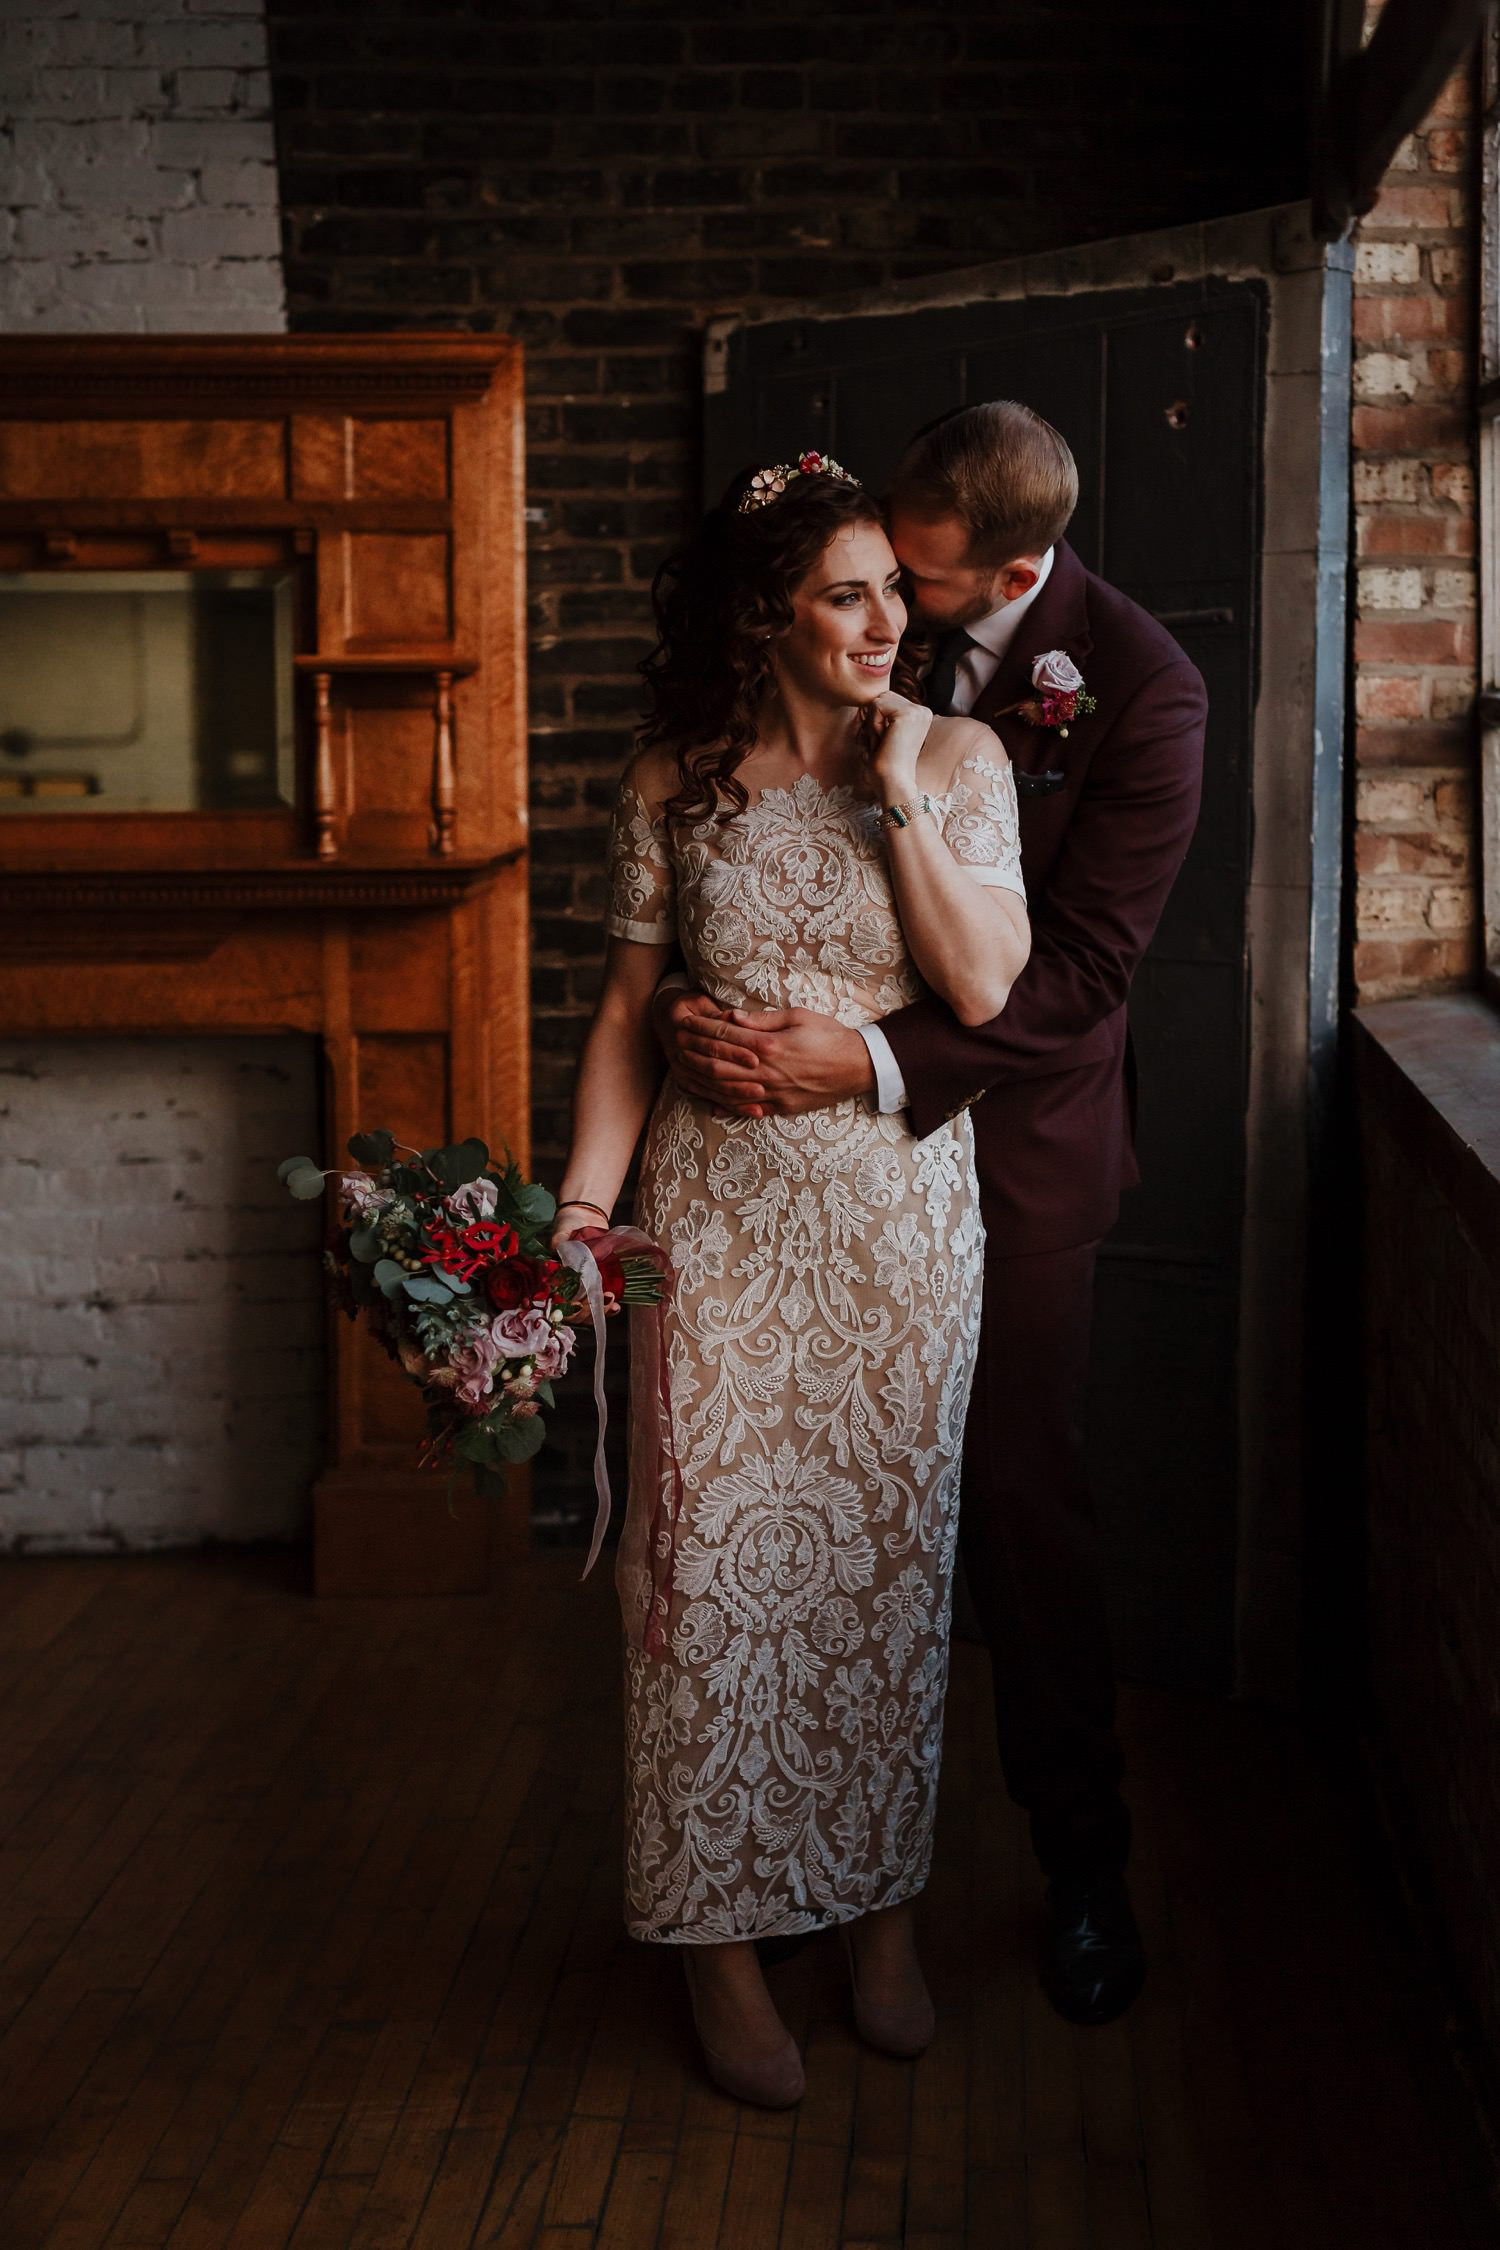 Groom embraces his bride during the portrait shoot at Salvage One